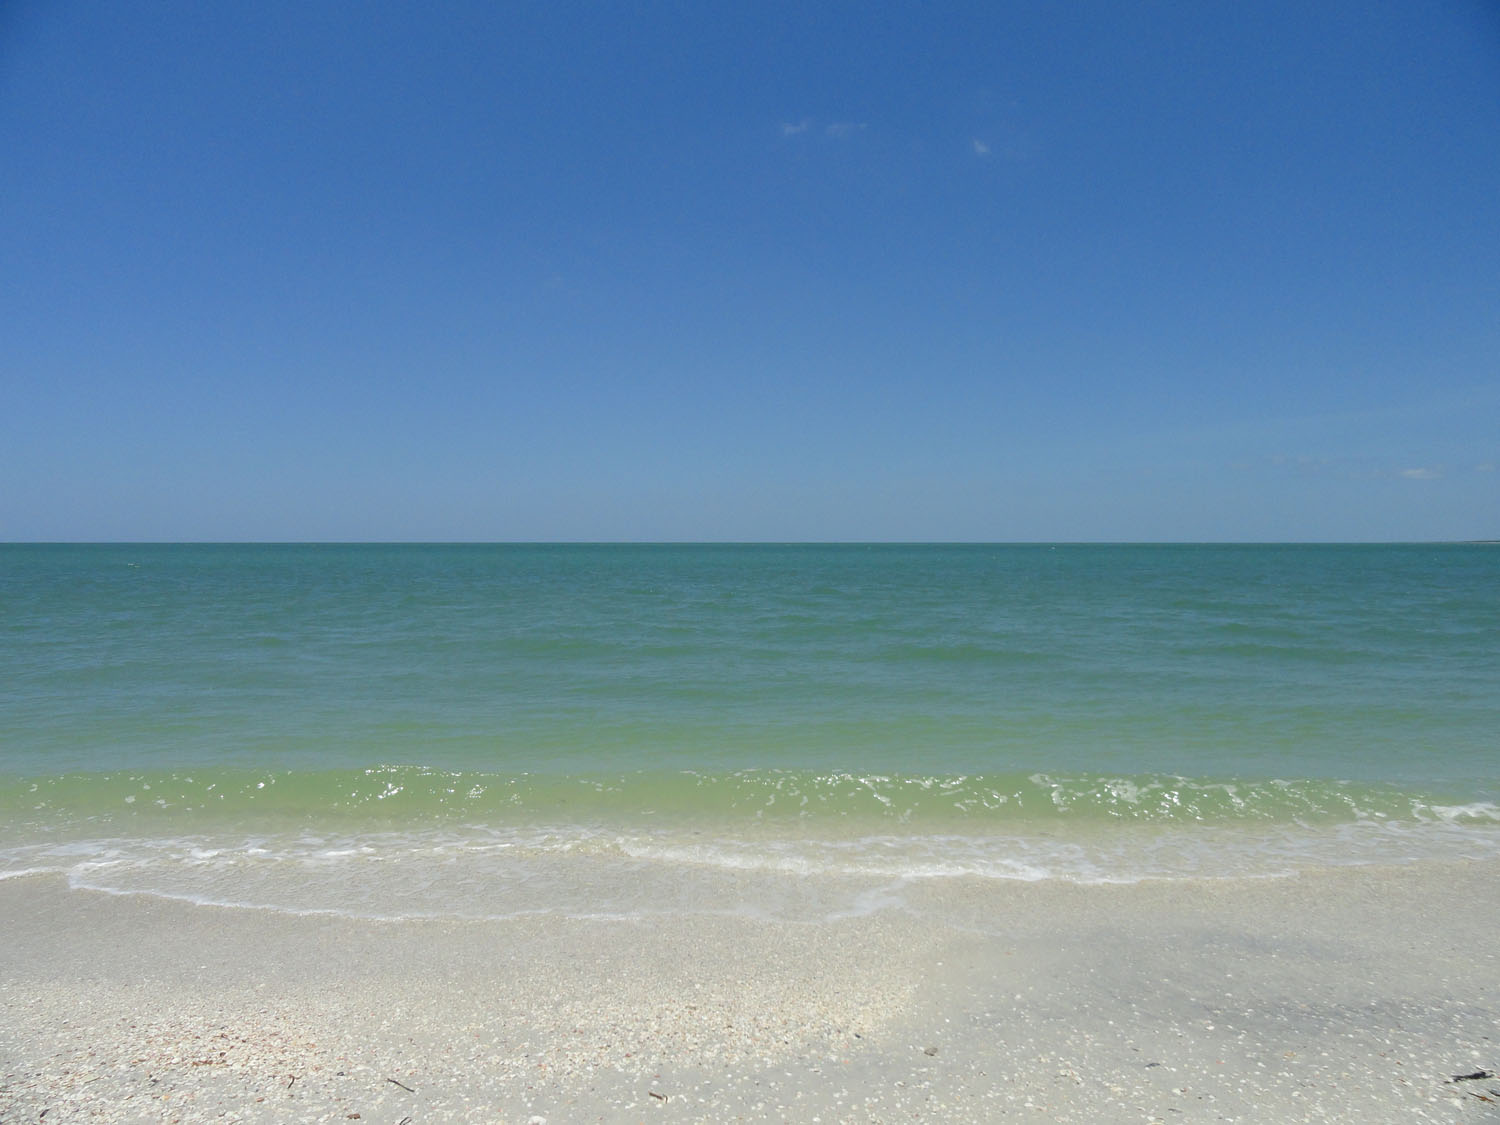 Gulf-of-mexico-Color-palette.jpg